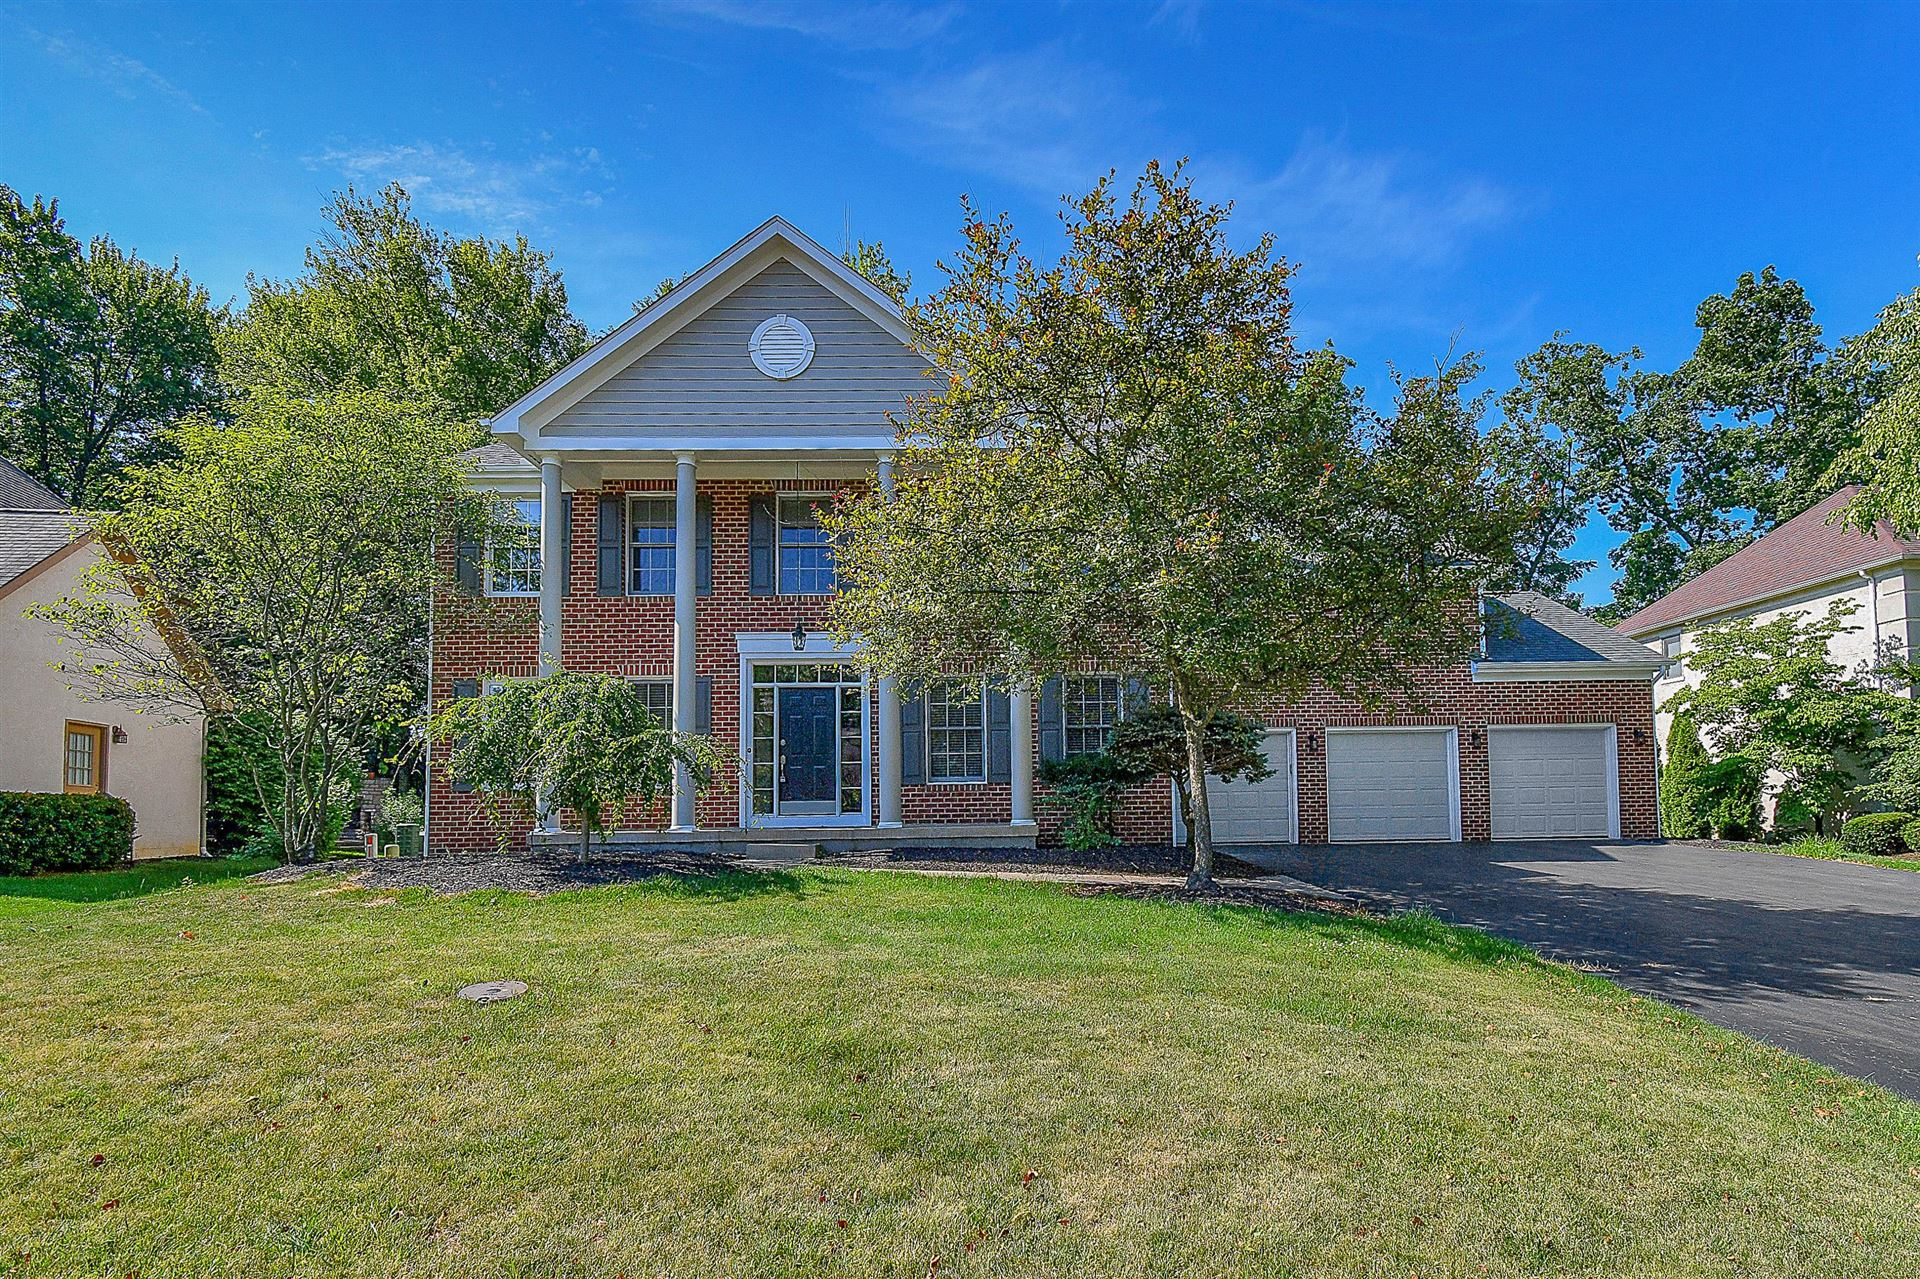 5544 Lake Shore Avenue, Westerville, OH 43082 - MLS#: 220030255